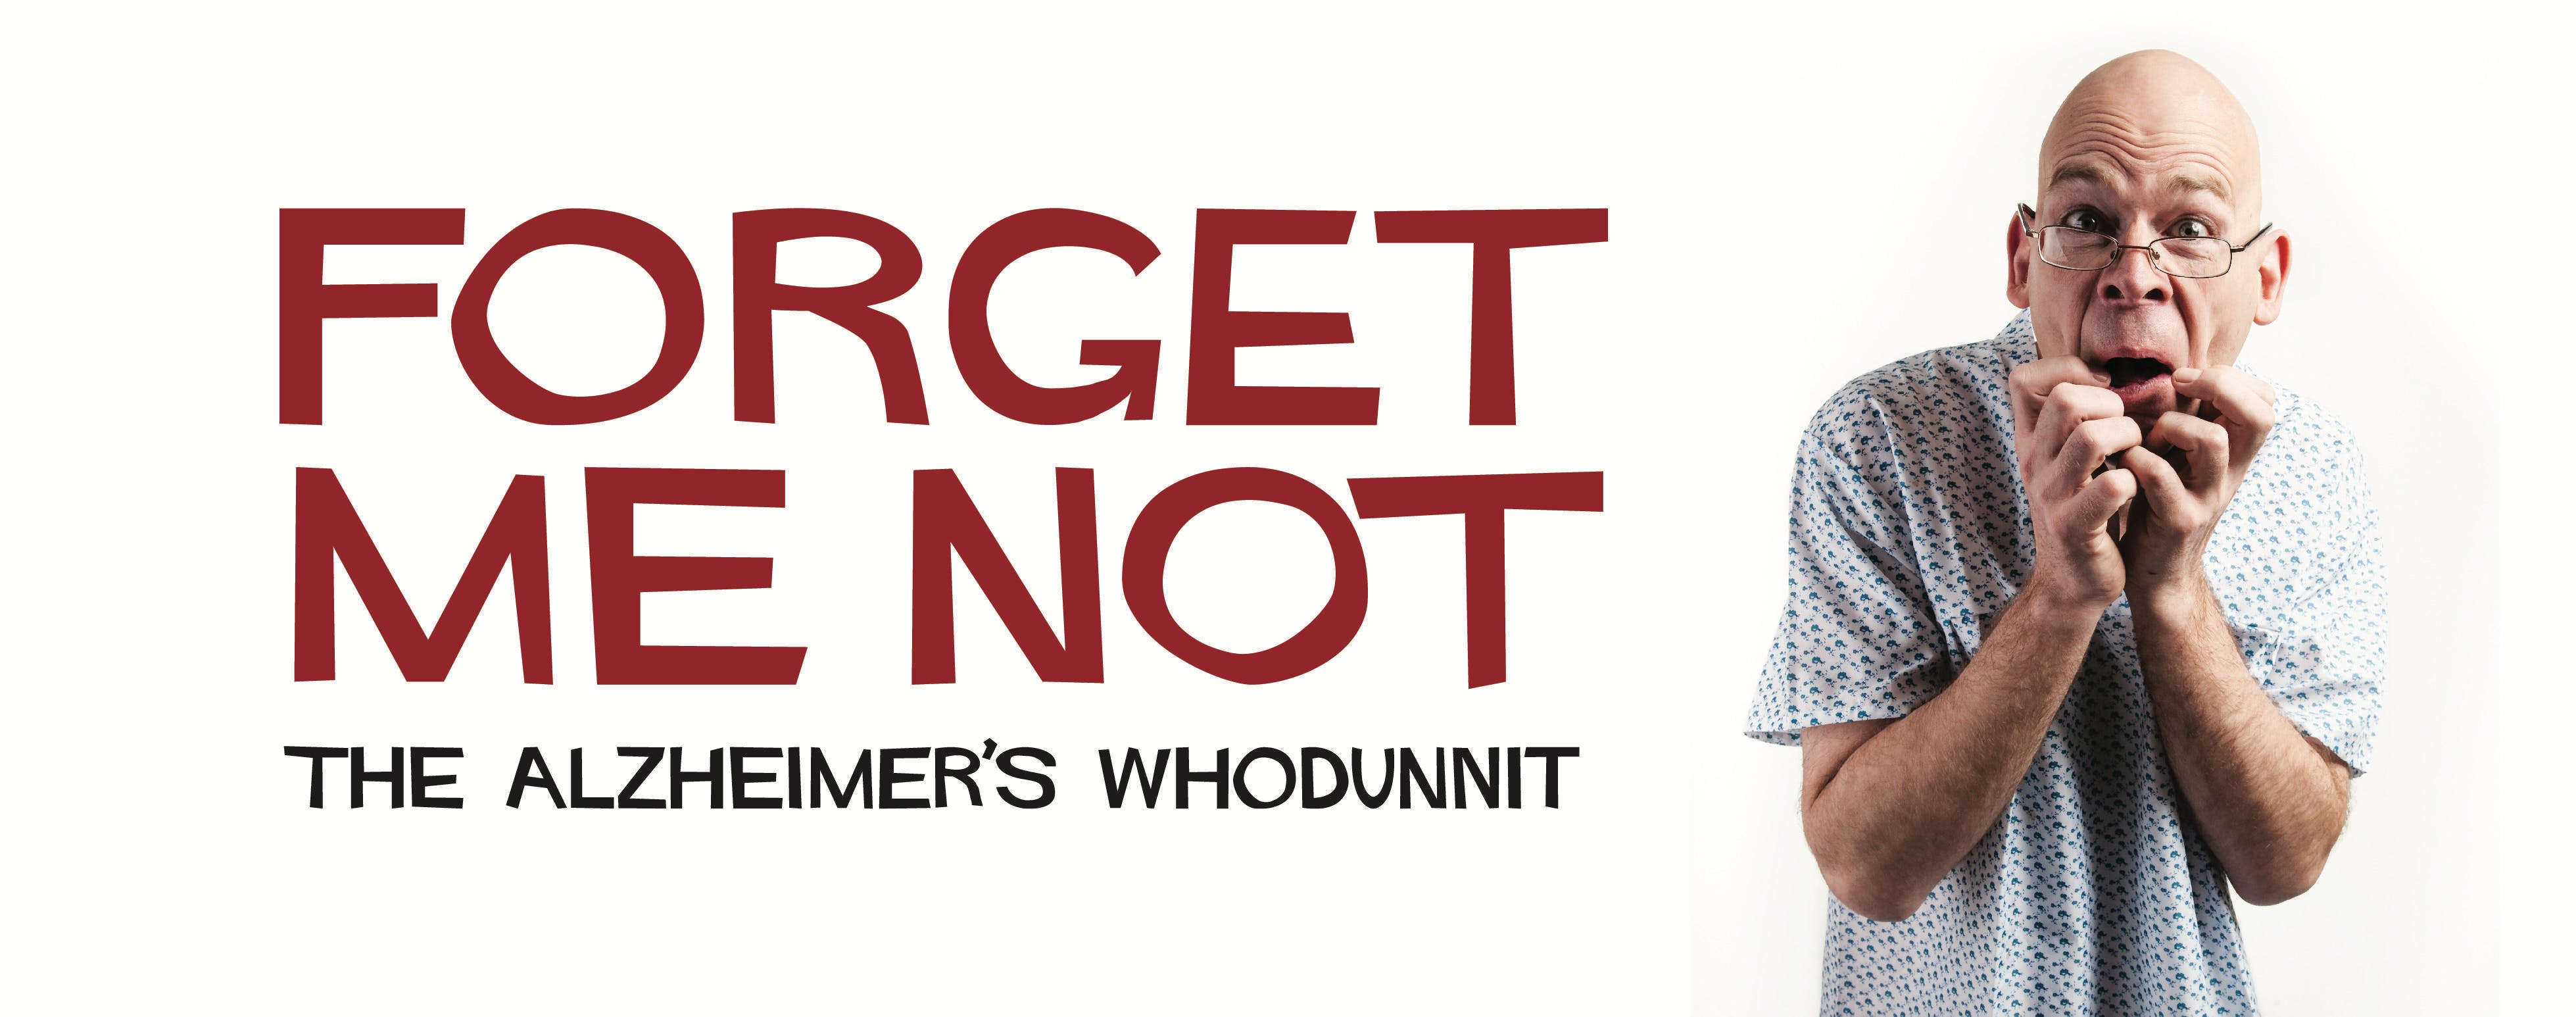 Forget Me Not~The Alzheimer's Whodunnit